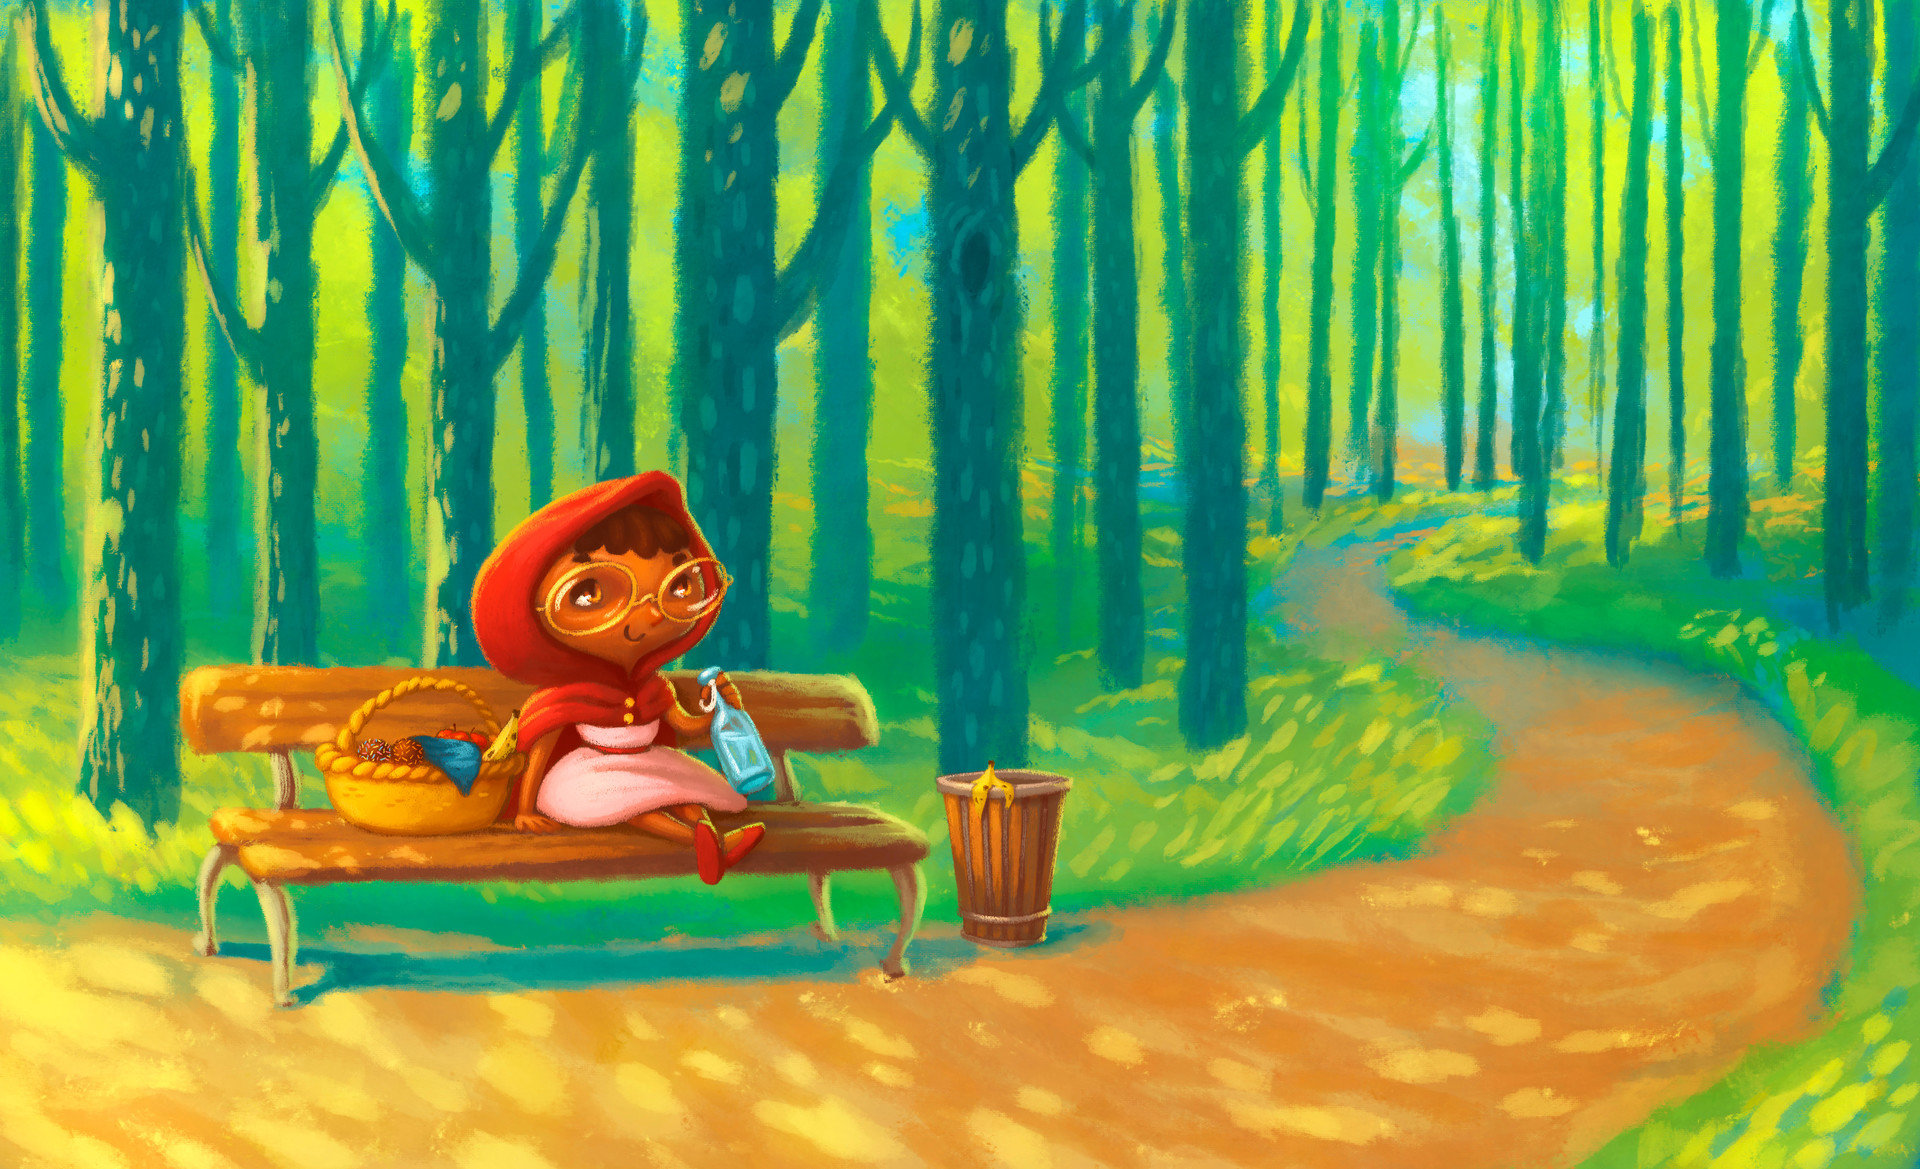 Little Red Riding Hood - Art directed by Chris K - Systemic Bilingual